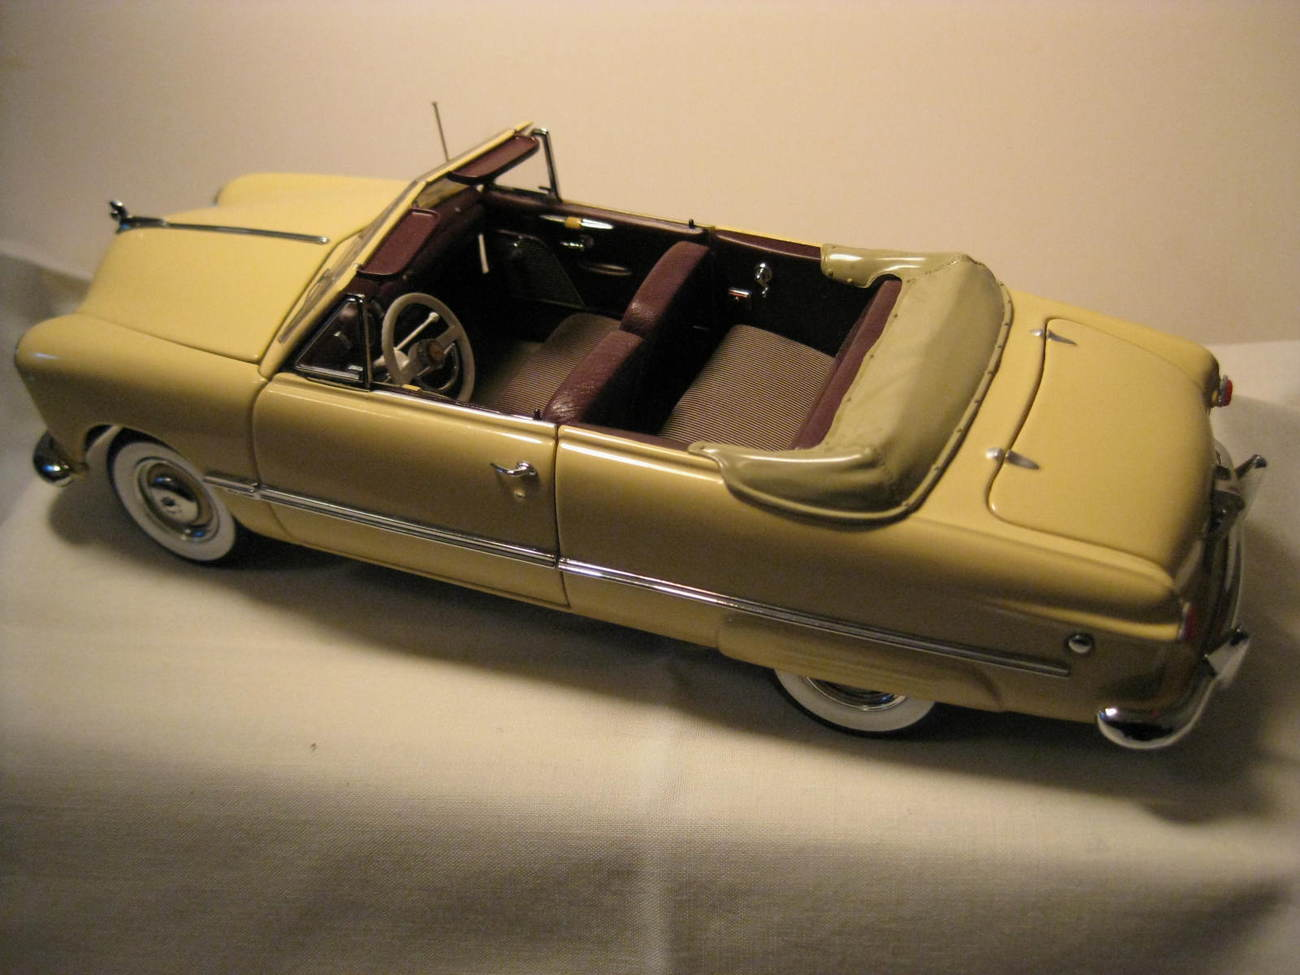 Primary image for 1949 Ford Custom Convertible by Danbury Mint Miami Cream